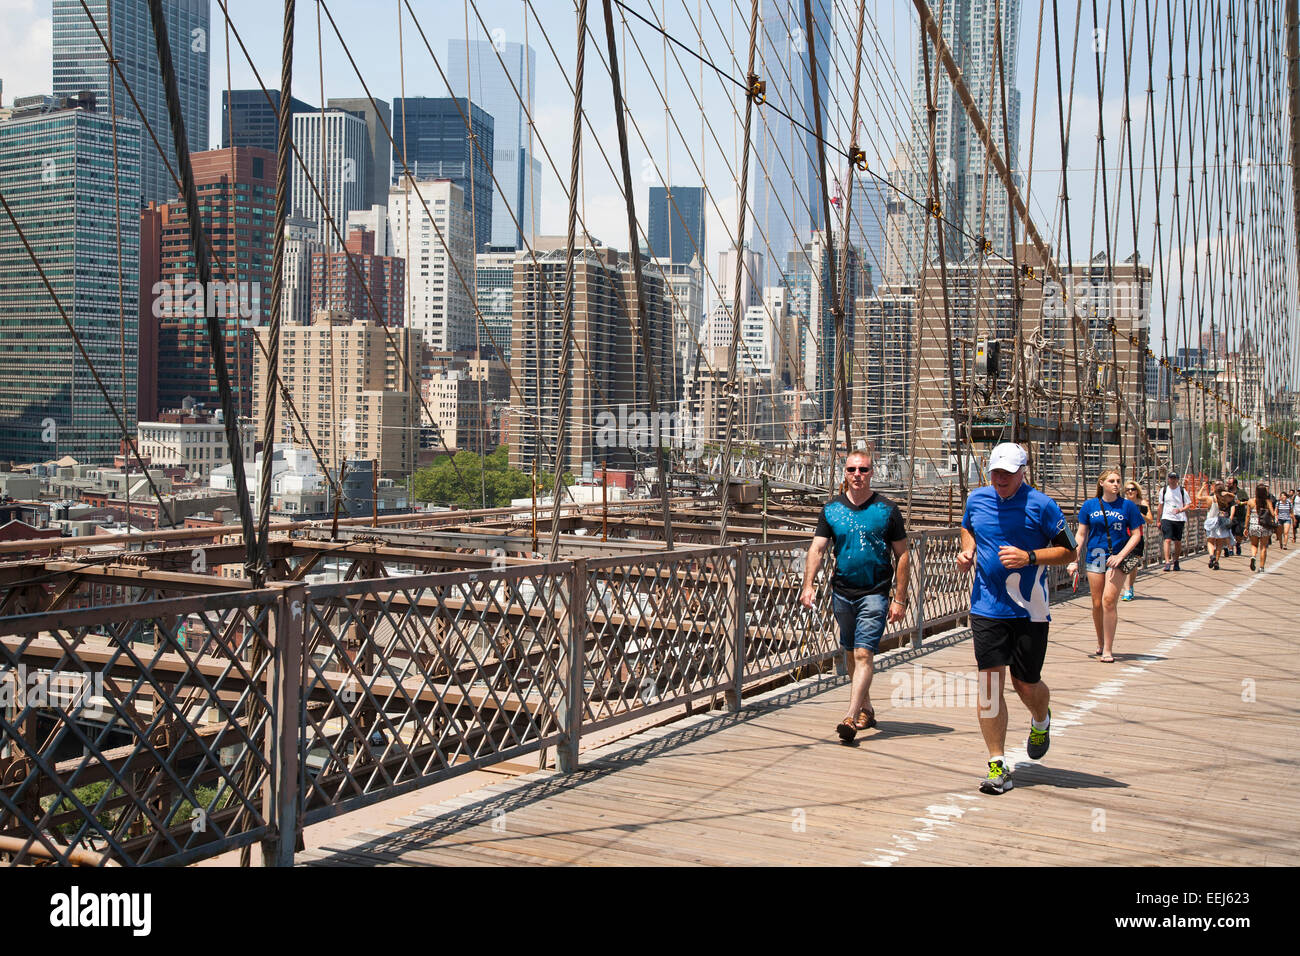 Brooklyn Bridge und Stadtbild, East River, New York, Usa, Amerika Stockbild